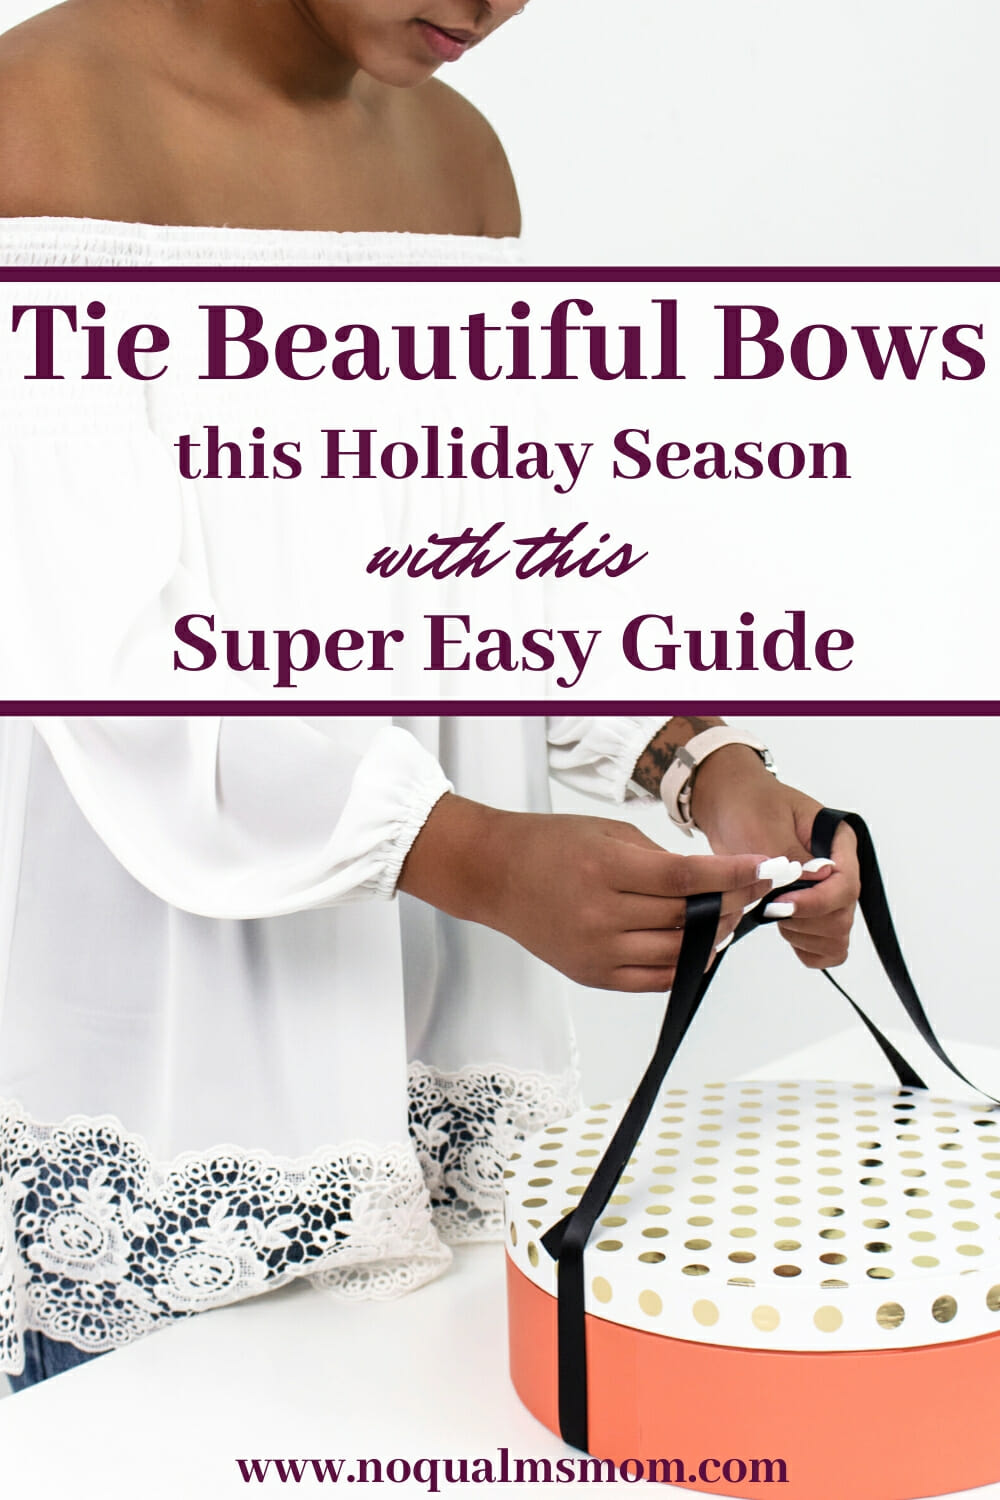 Tie Beautiful Bows this Holiday Season with this Super Easy Guide